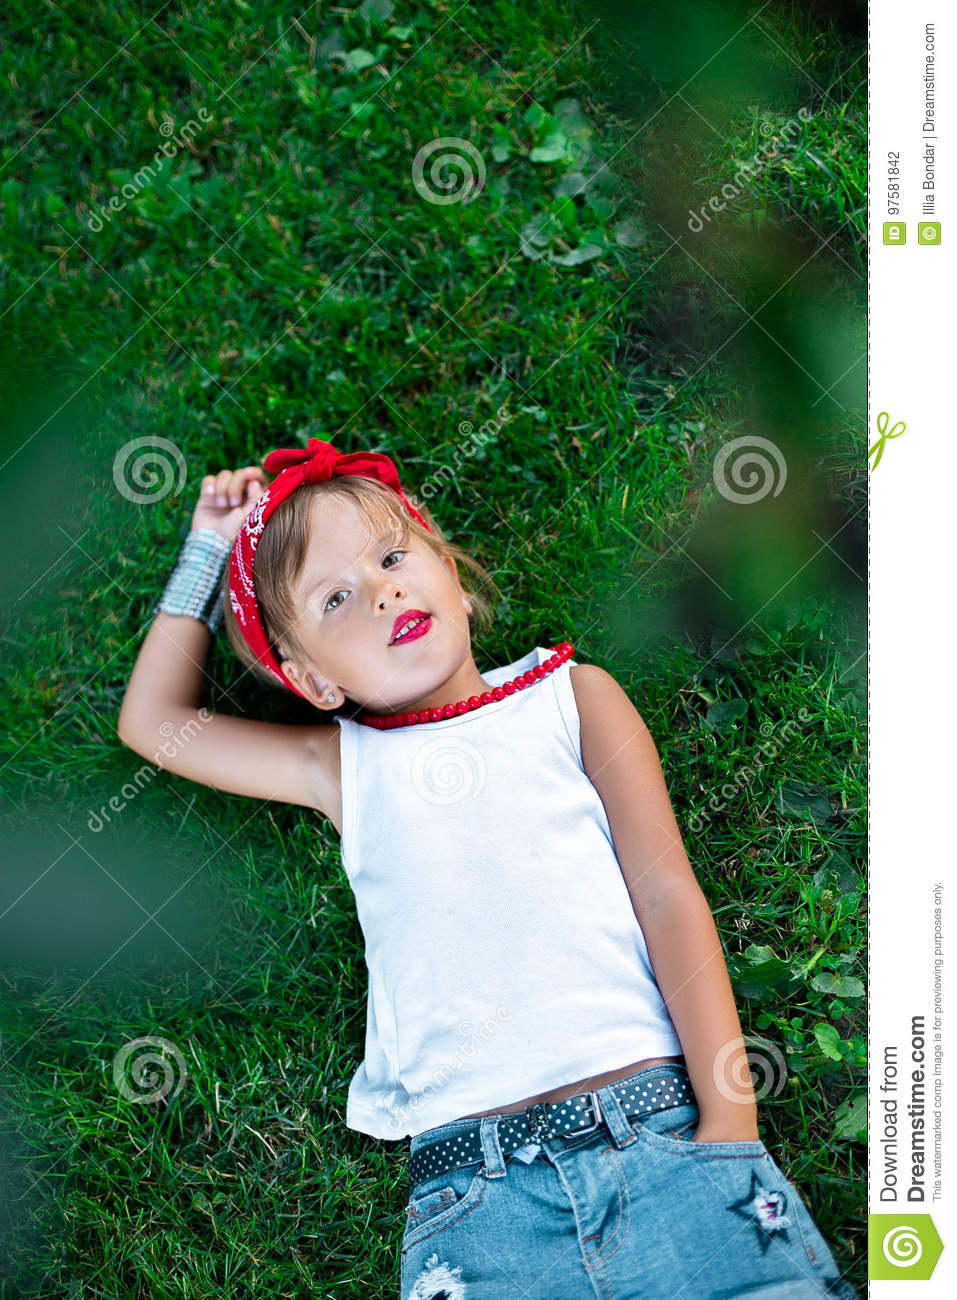 Cool little girl outdoor lying on the grass. Child in white t-shirt, jeans shorts, red necklace and bandage on the head. Summer.